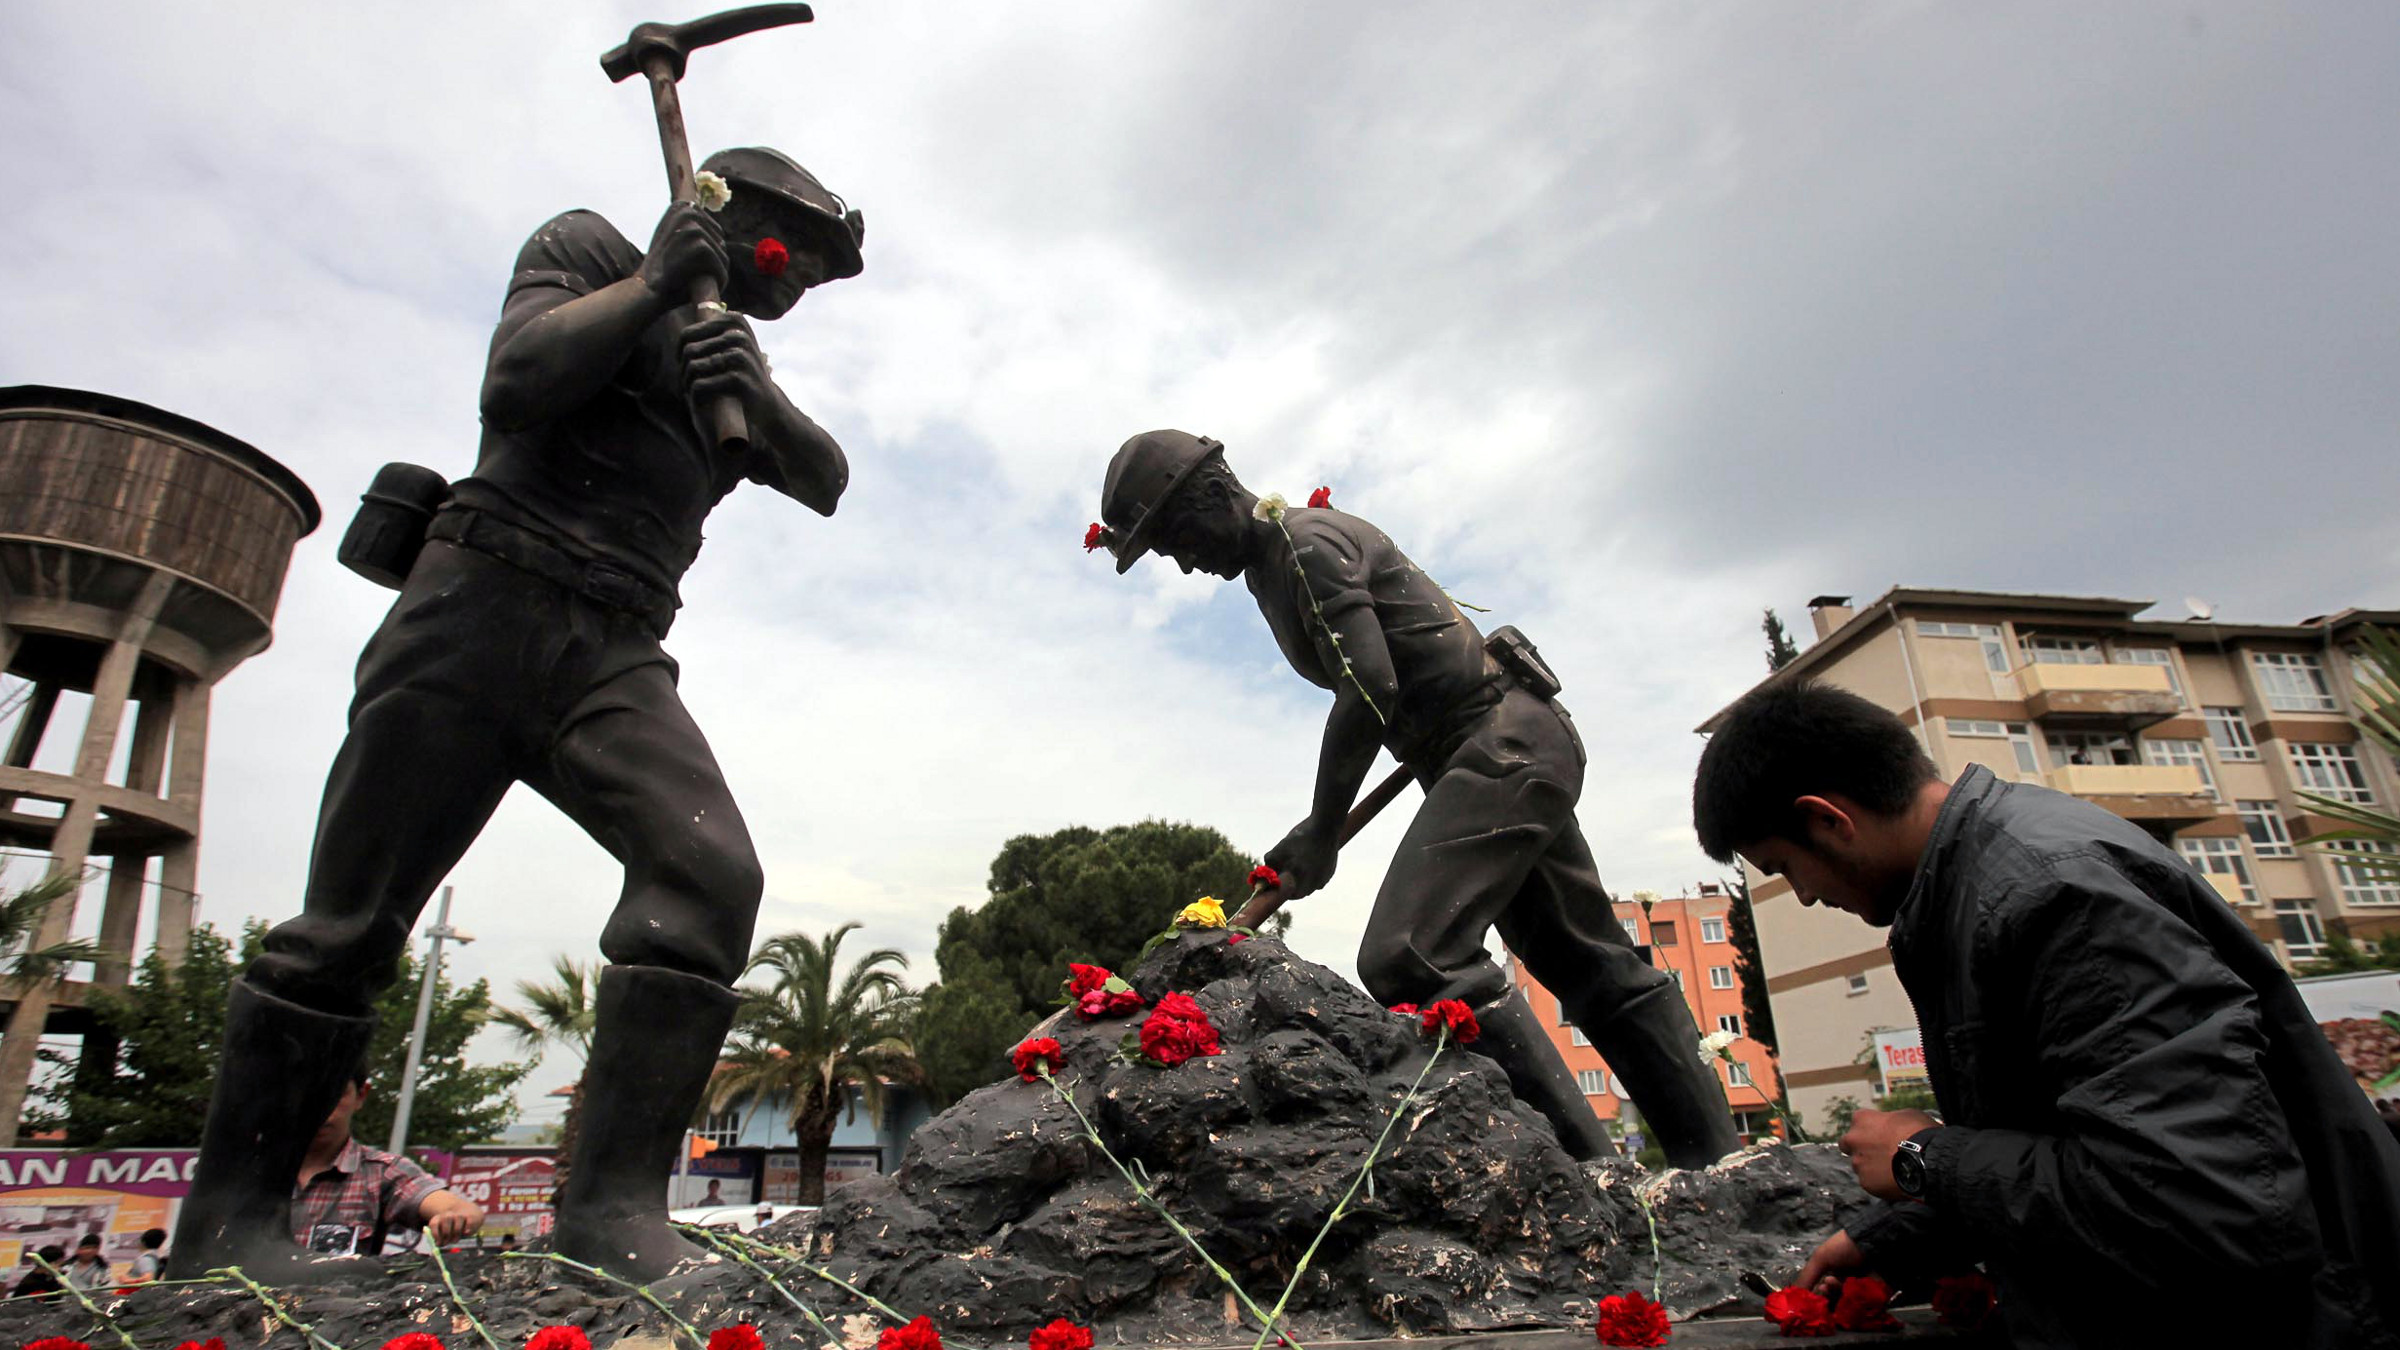 A man lays carnations at the Miners Monument in central Soma, a district in Turkey's western province of Manisa May 14, 2014. Rescuers pulled more dead and injured from the coal mine in western Turkey on Wednesday more than 12 hours after an explosion, bringing the death toll to above 200 in the nation's worst mining disaster for decades. Hundreds more were still believed to be trapped in the mine in Soma, around 120 km (75 miles) northeast of the Aegean coastal city of Izmir. The explosion, which triggered a fire, occurred shortly after 3 pm (1200 GMT) on Tuesday.